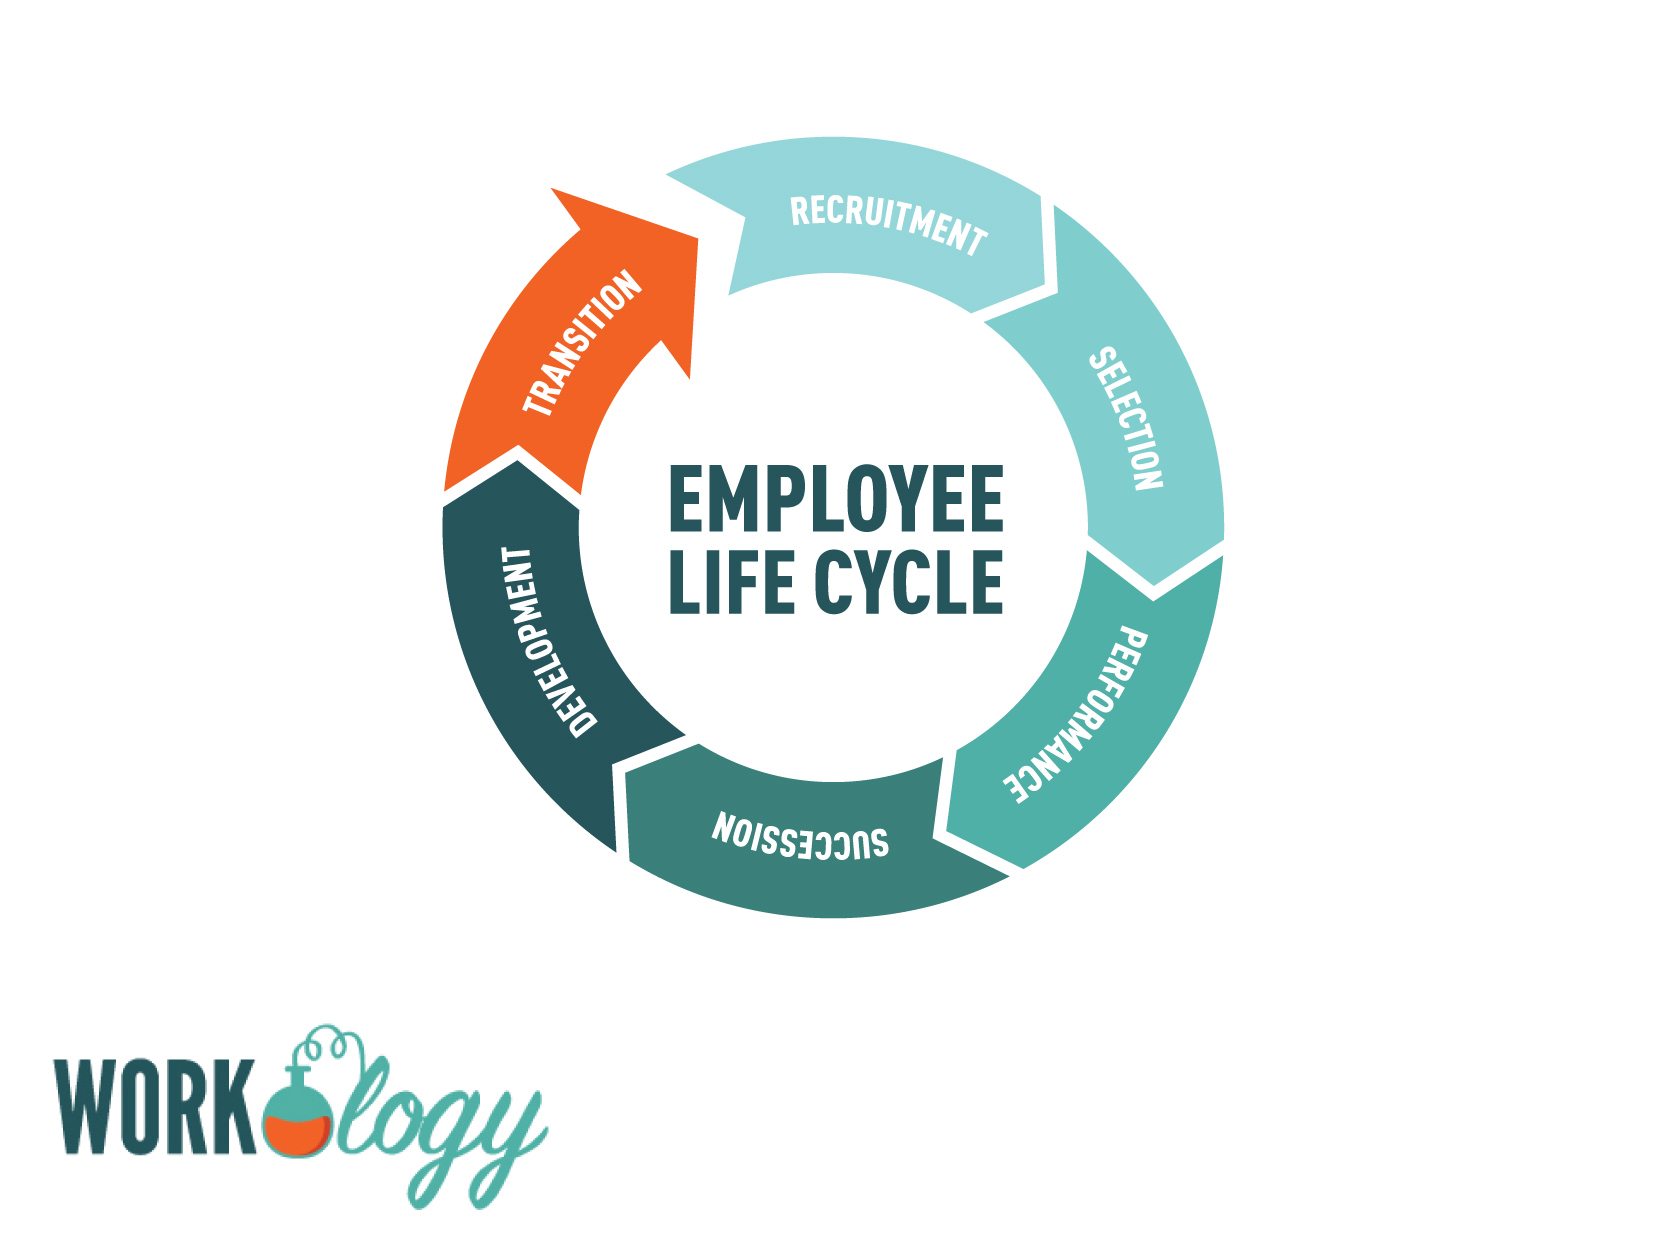 employee life cycle, recruitment, hiring, performance, succession, development, transition